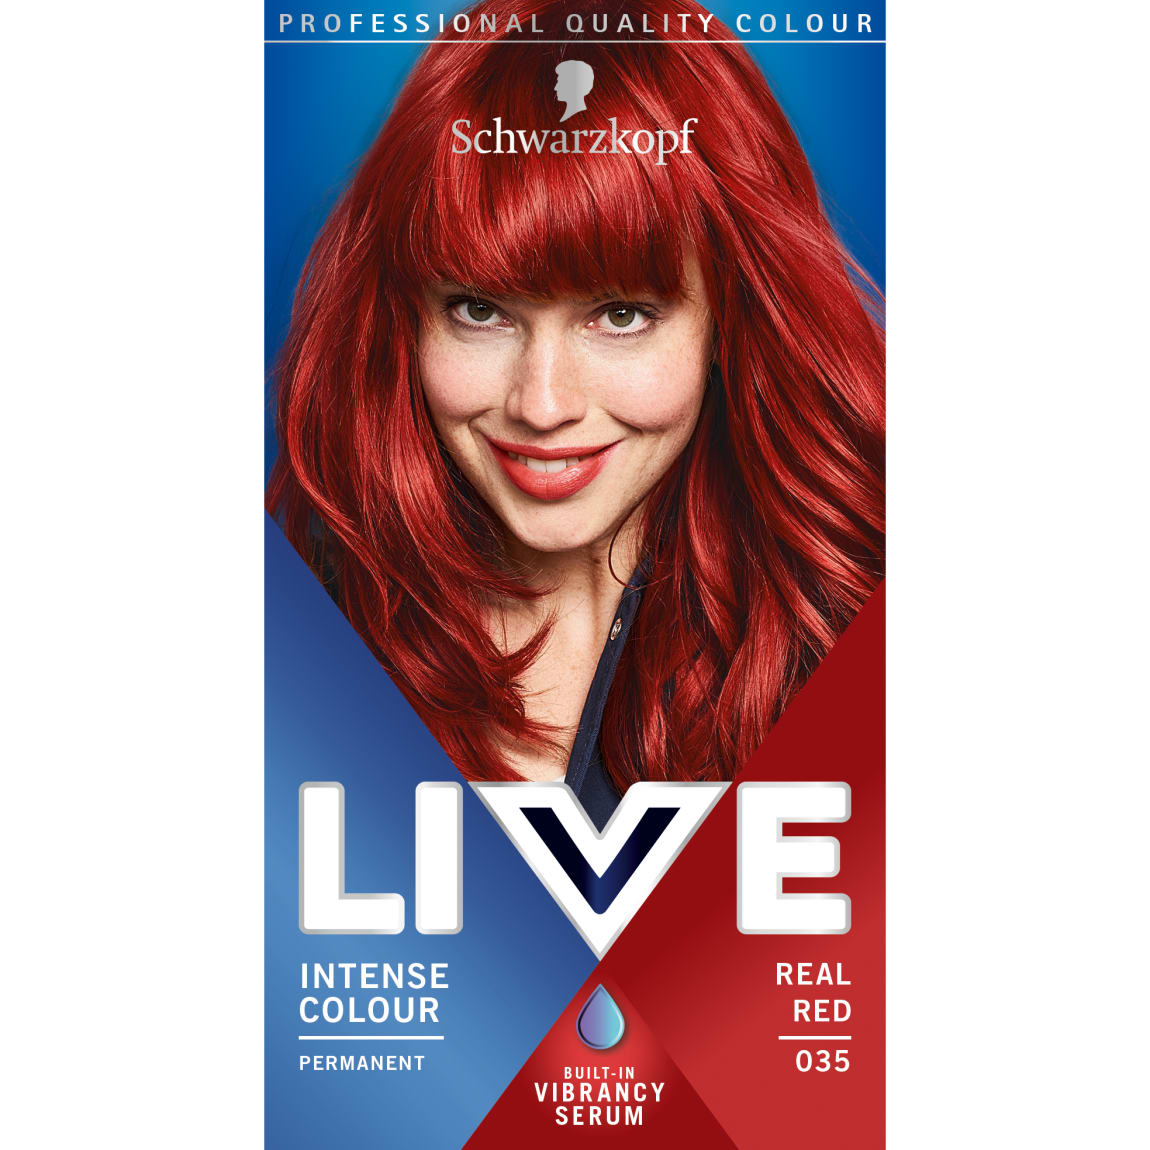 Schwarzkopf Live Intense Colour - Real Red